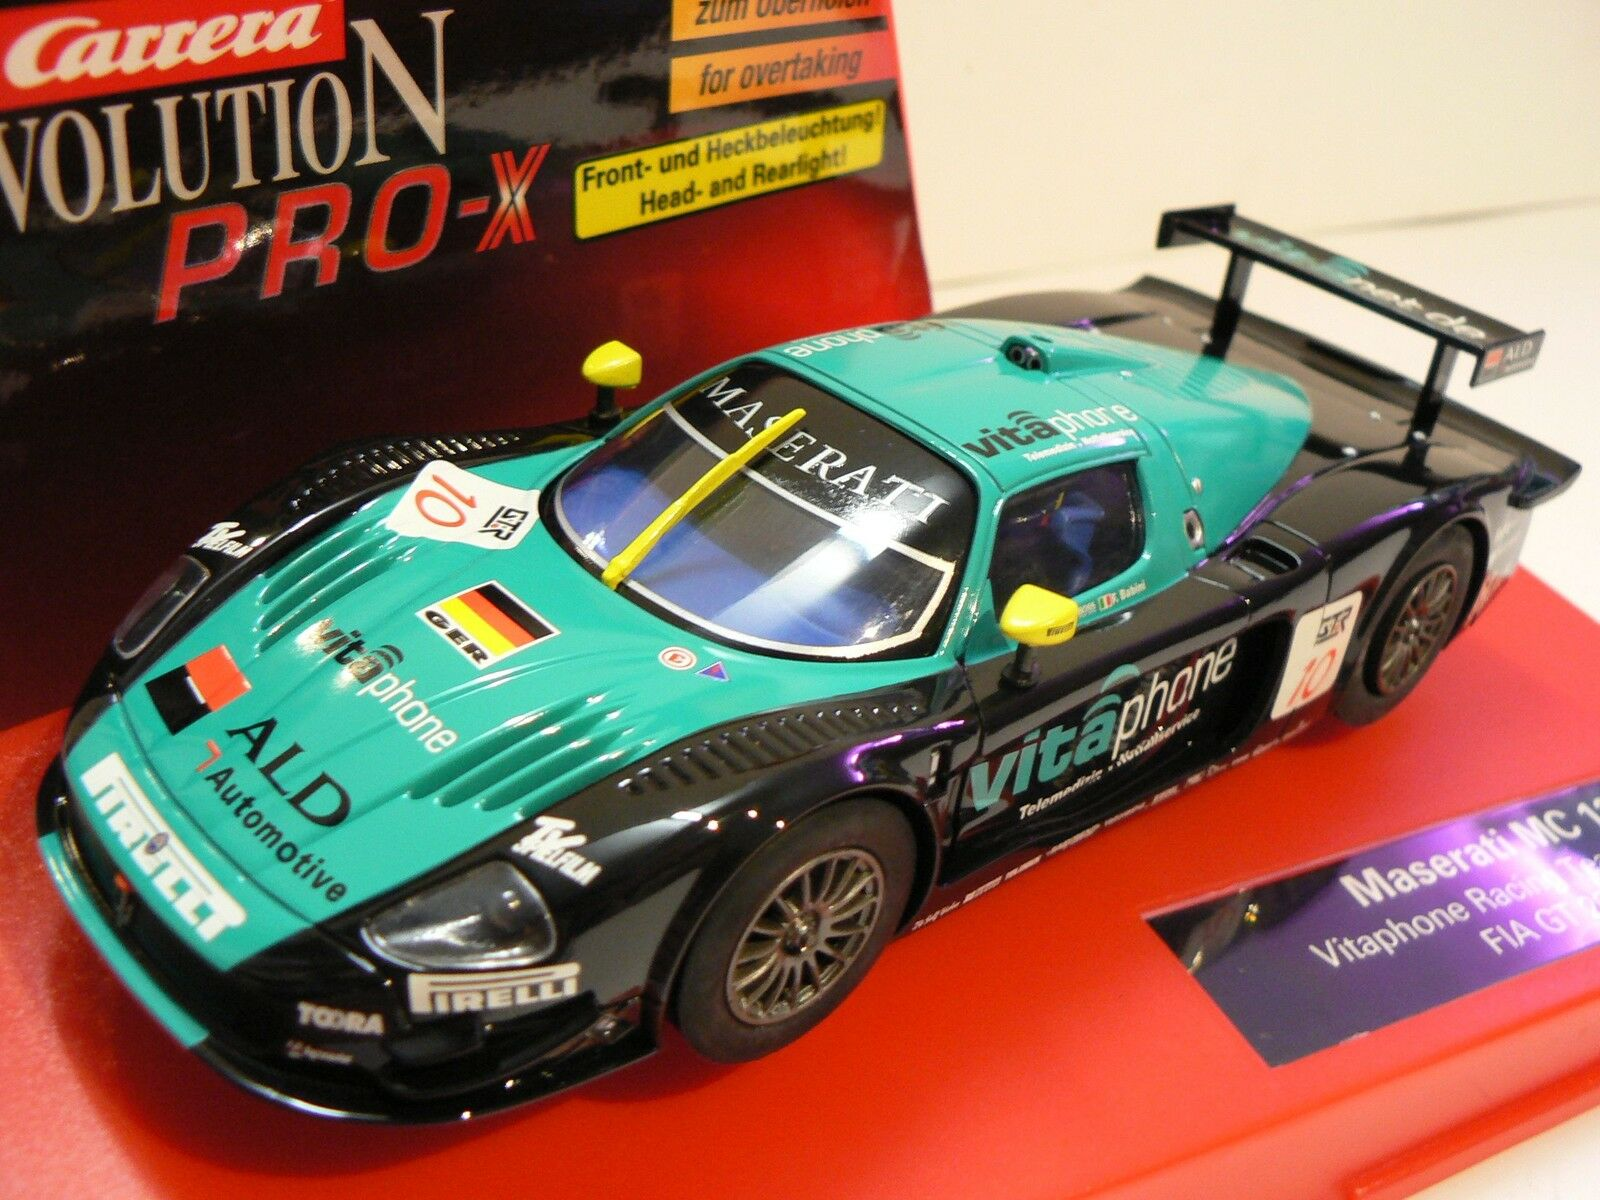 CARRERA Pro-X 30251 Maserati MC 12 VITAPHONE RACING TEAM 2005 NUEVO